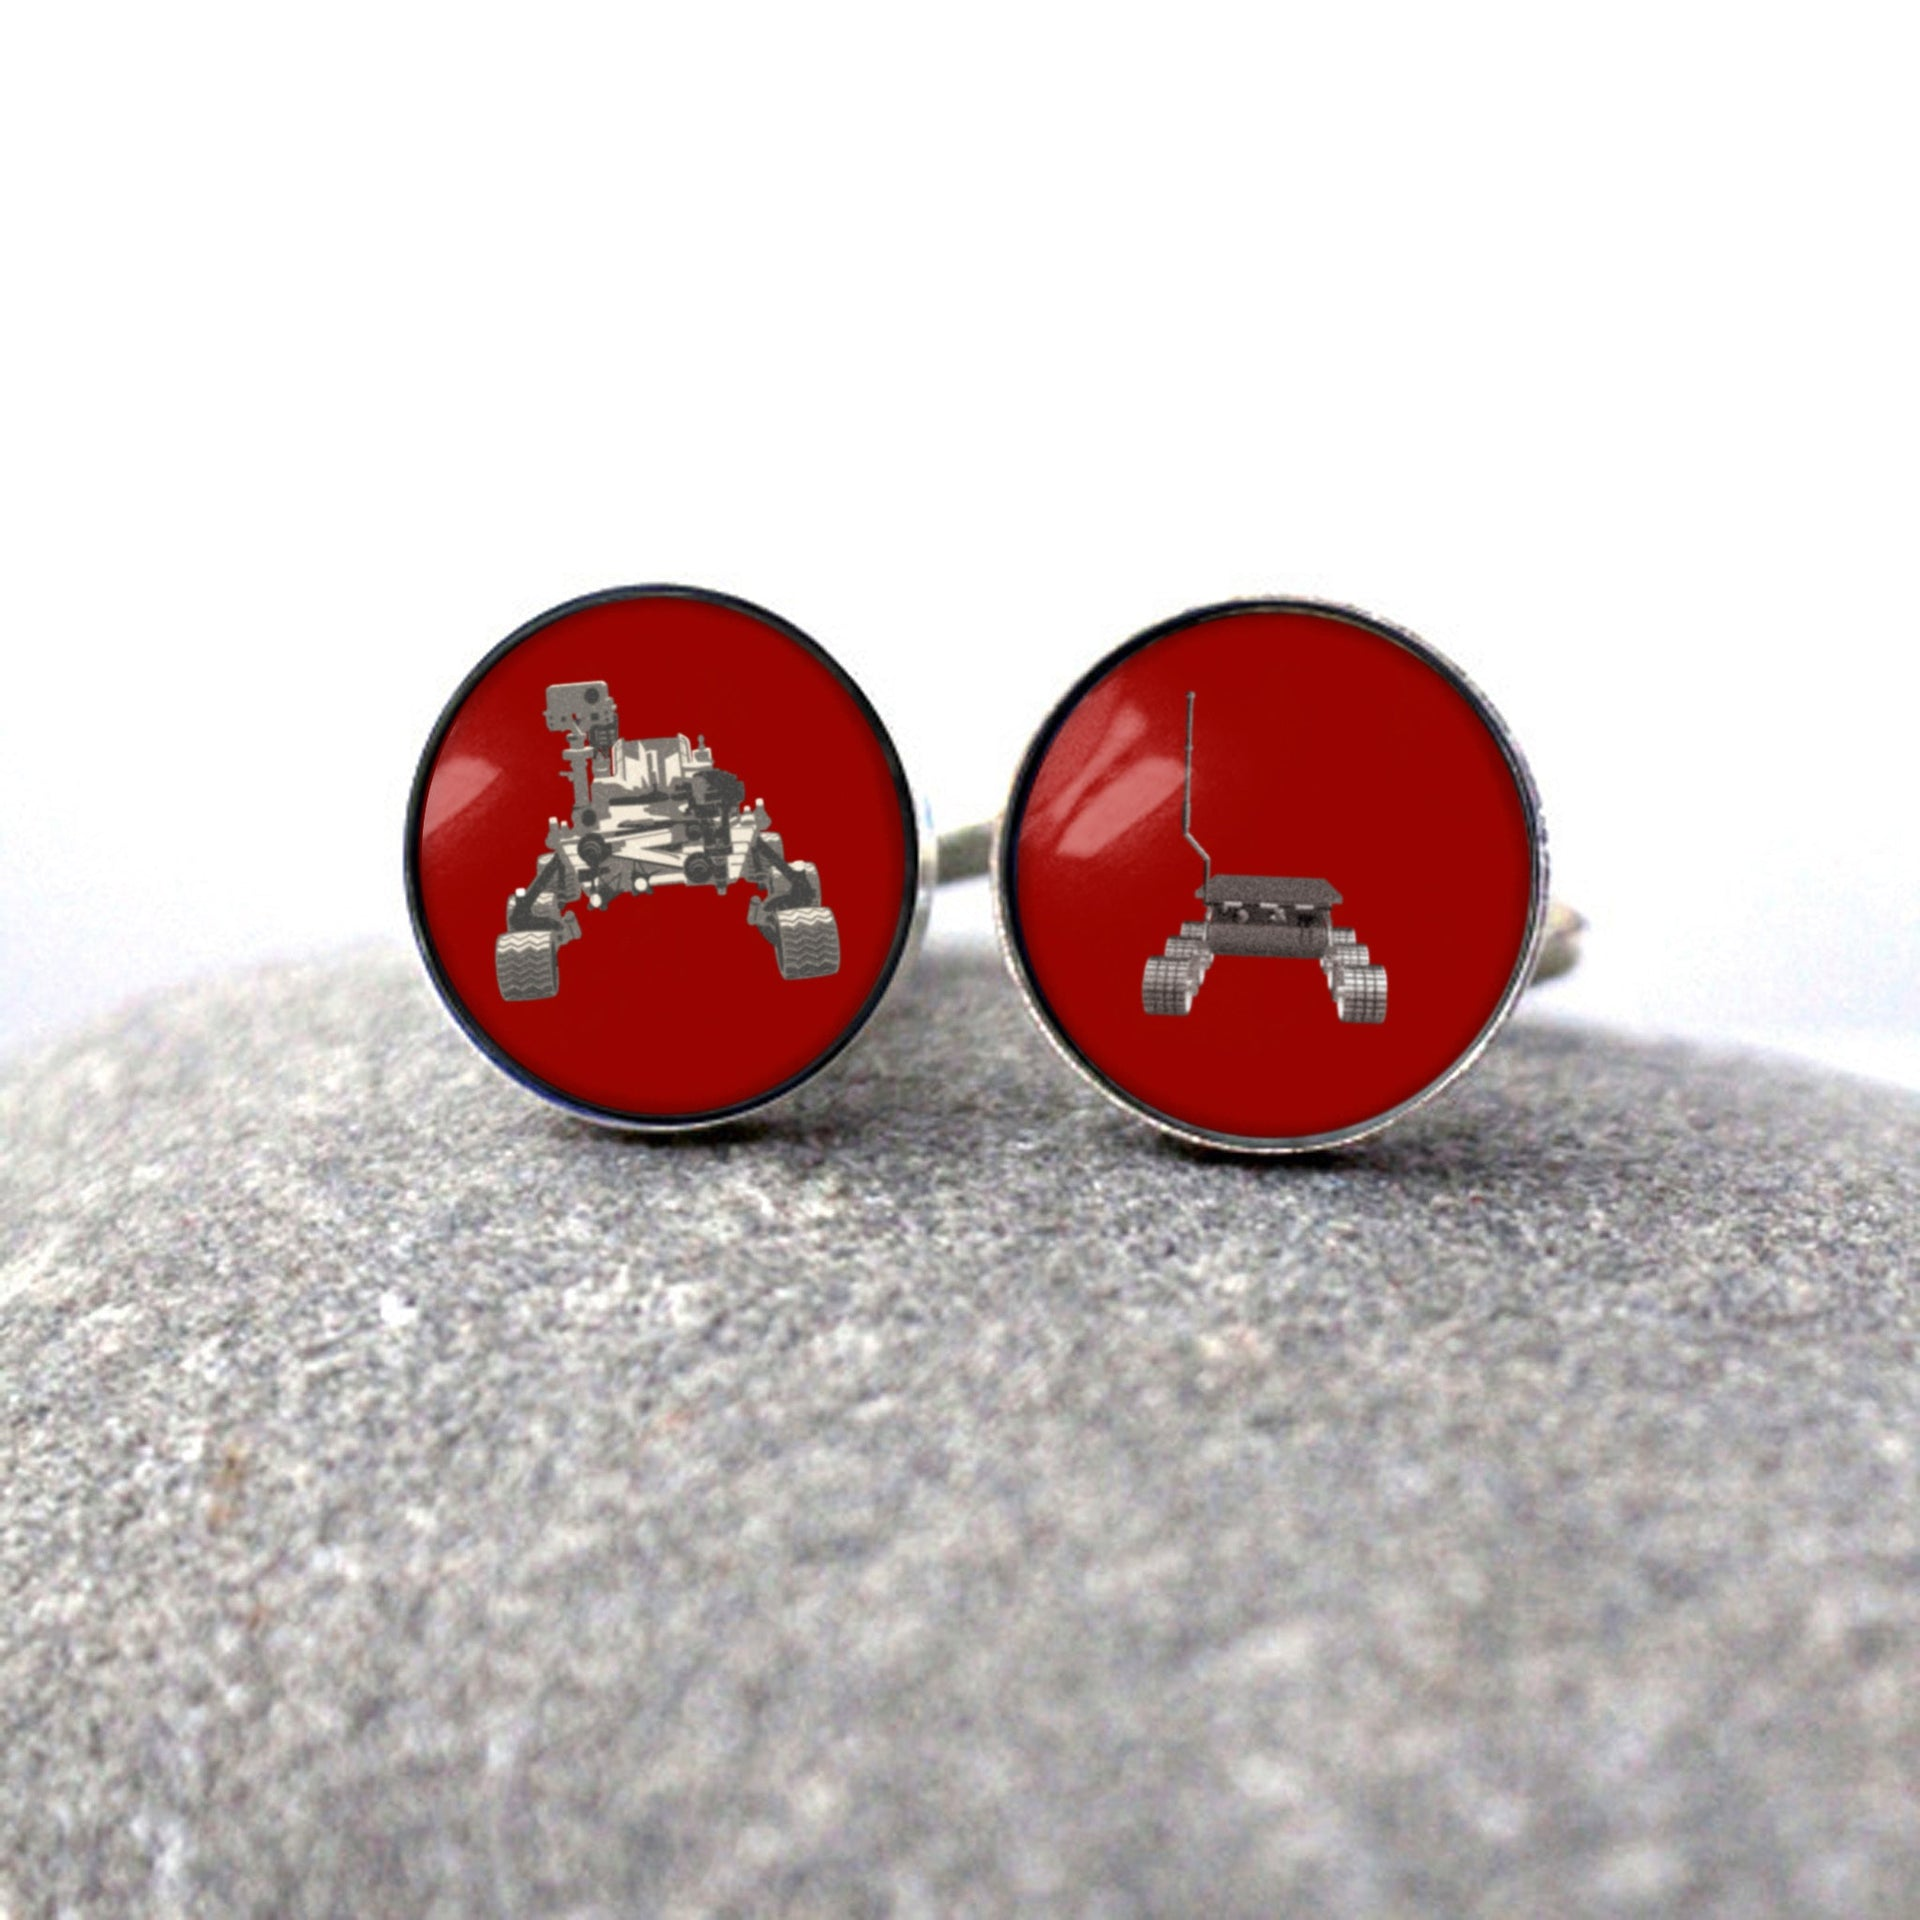 Father and Child Mars Rover Cufflinks